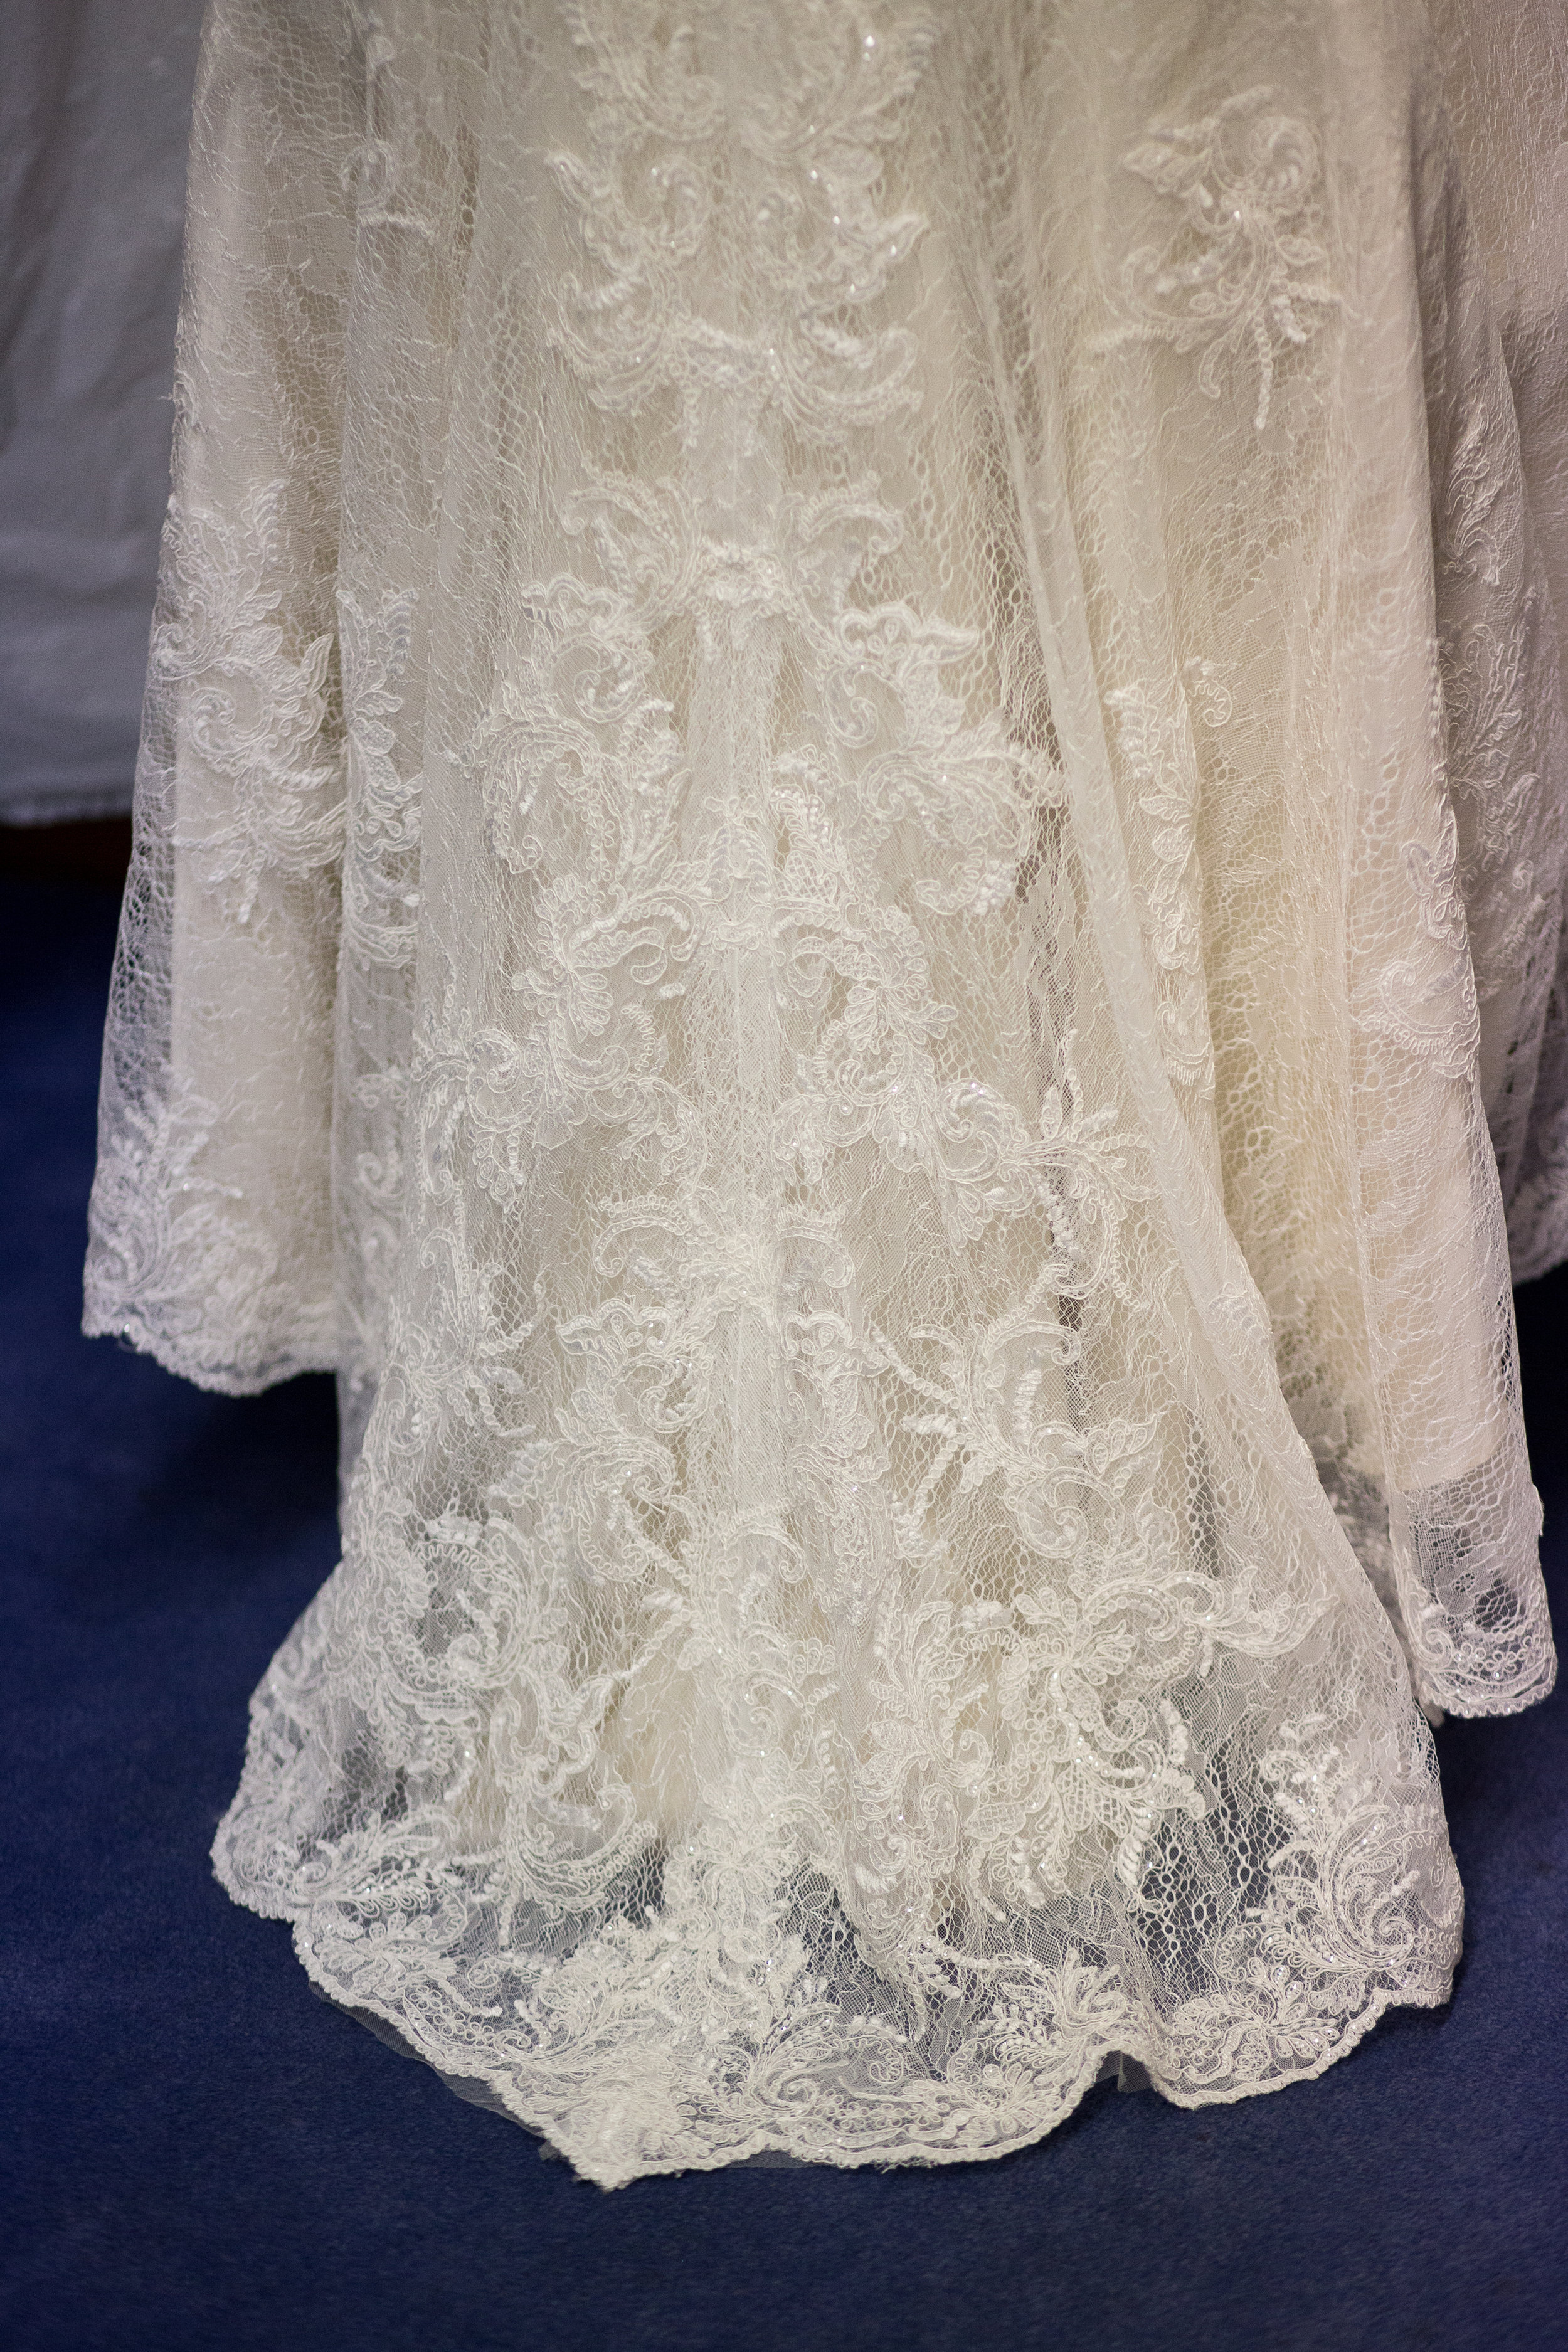 Long lace bridal gown for wedding in Colorado Springs at First Baptist Church Stacy Carosa Photography